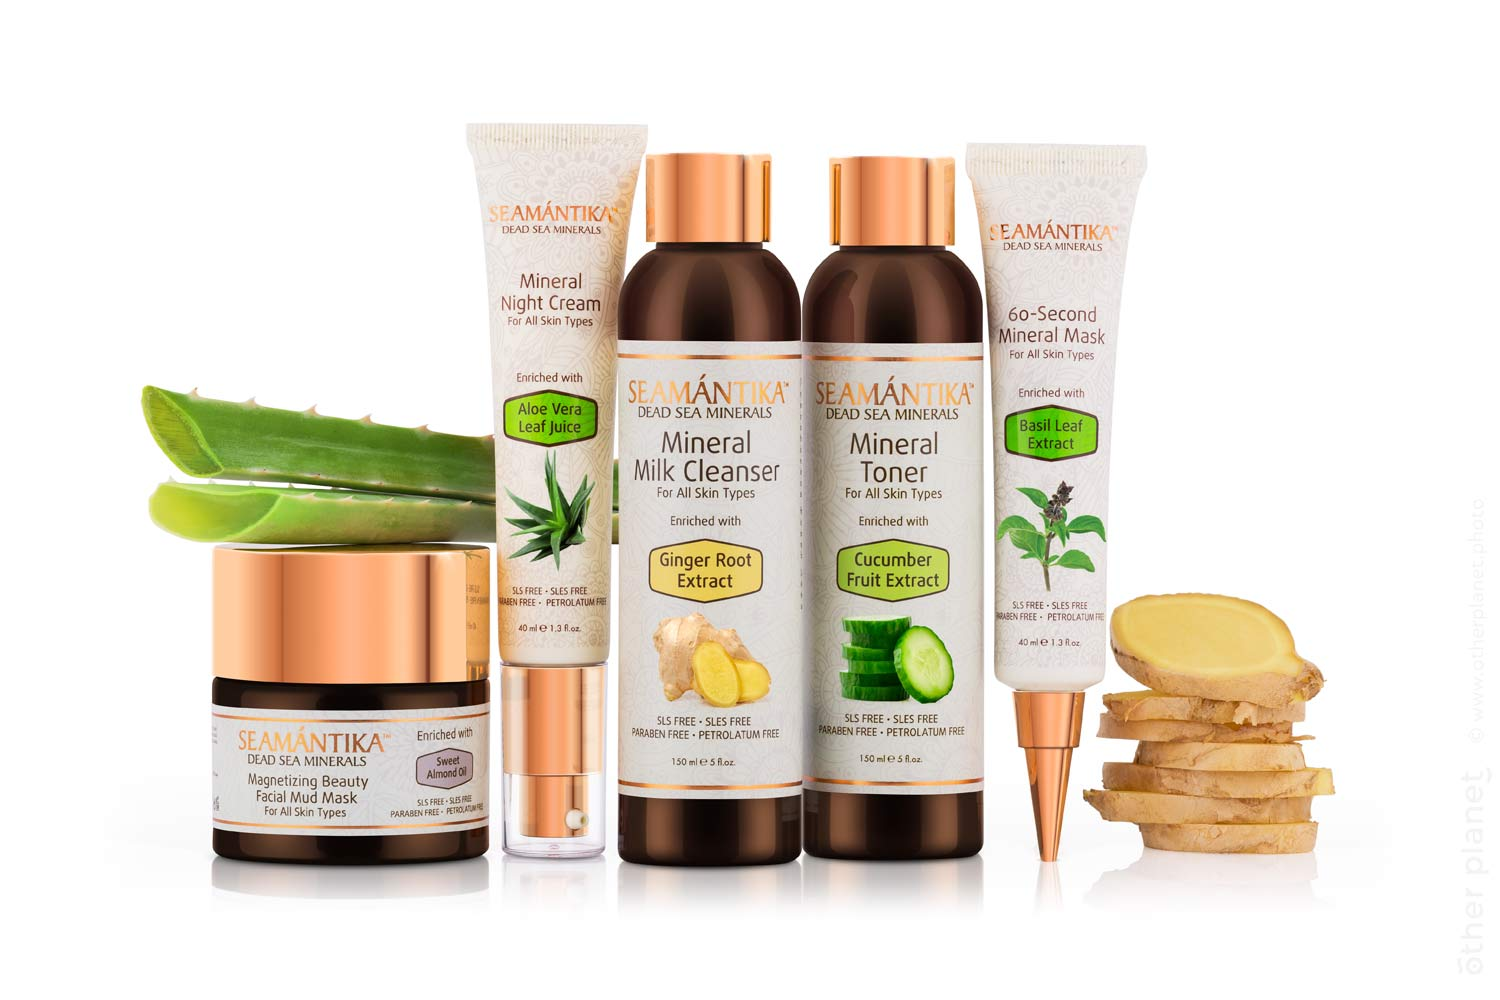 emantika cosmetic products collection with plant extracts photo on white